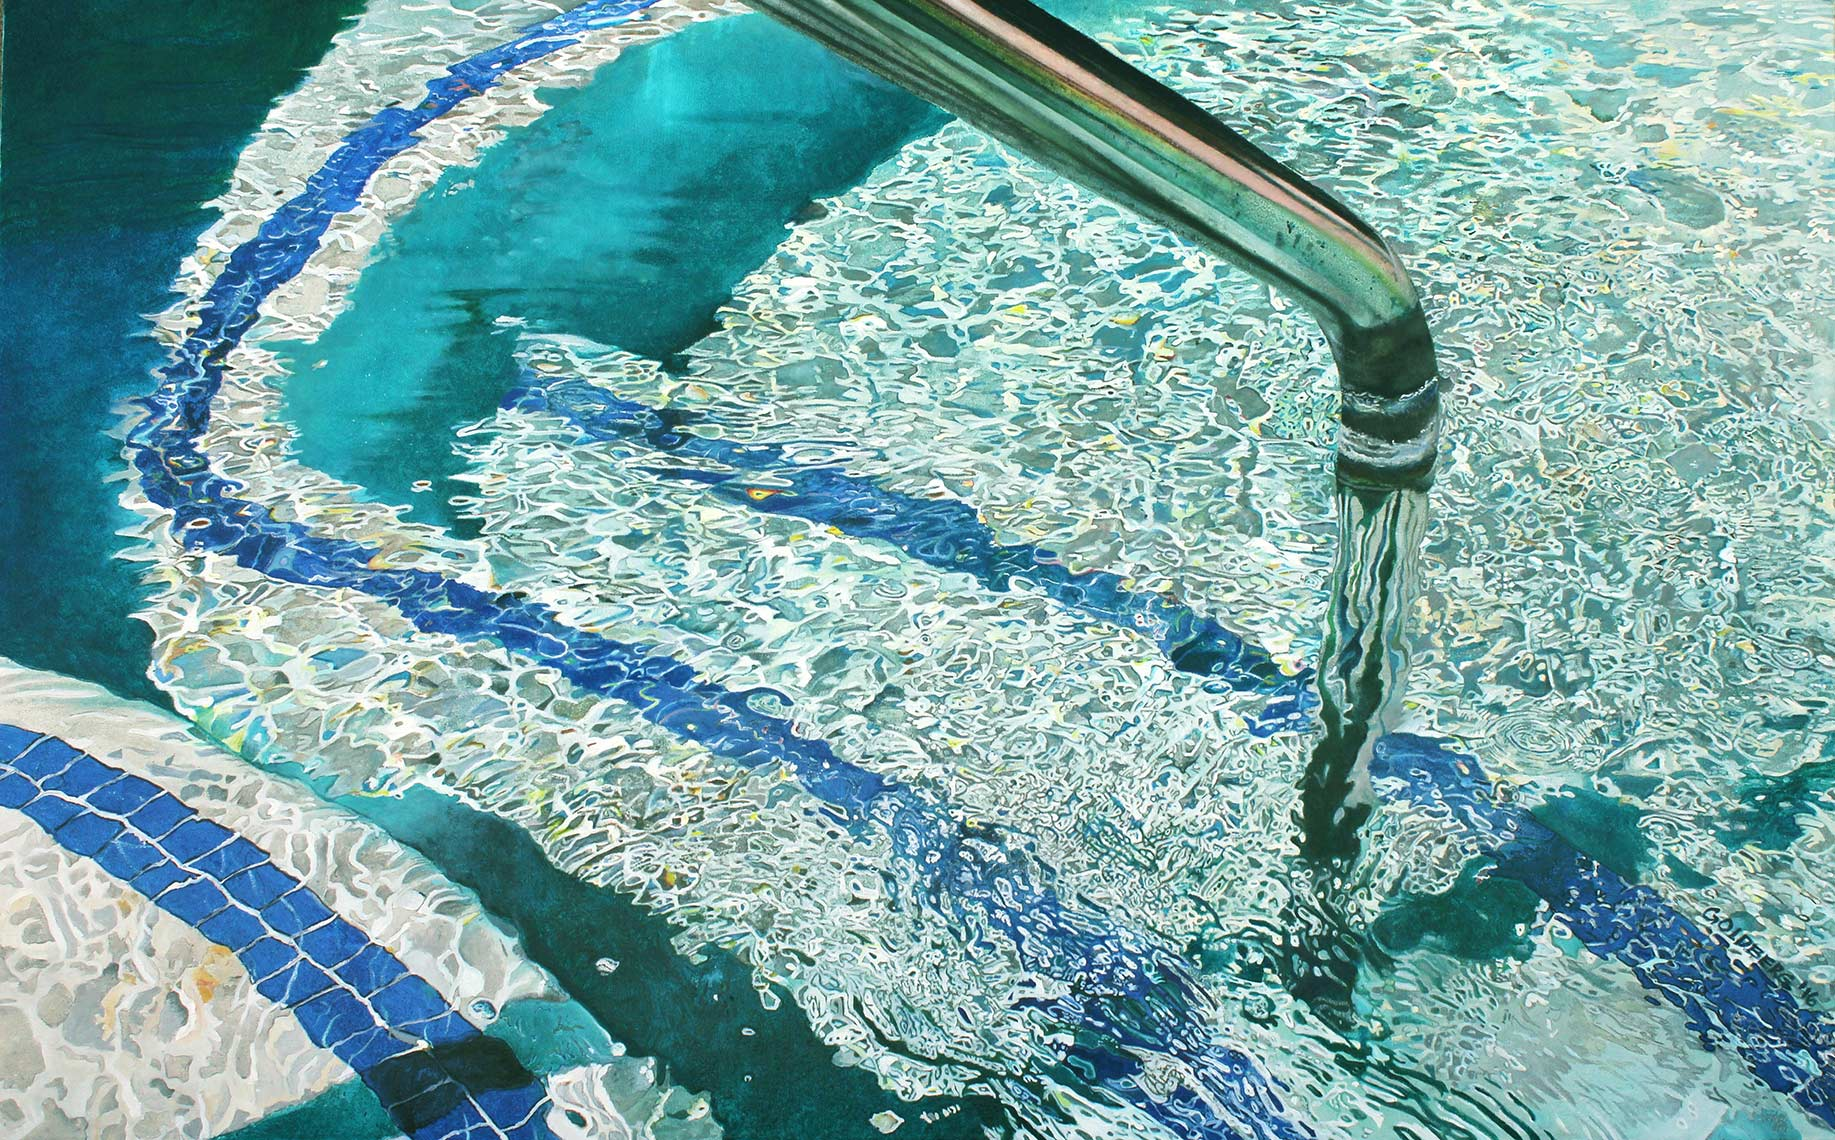 Pool-27-OIl-on-Canvas-30_x48_-June-2016